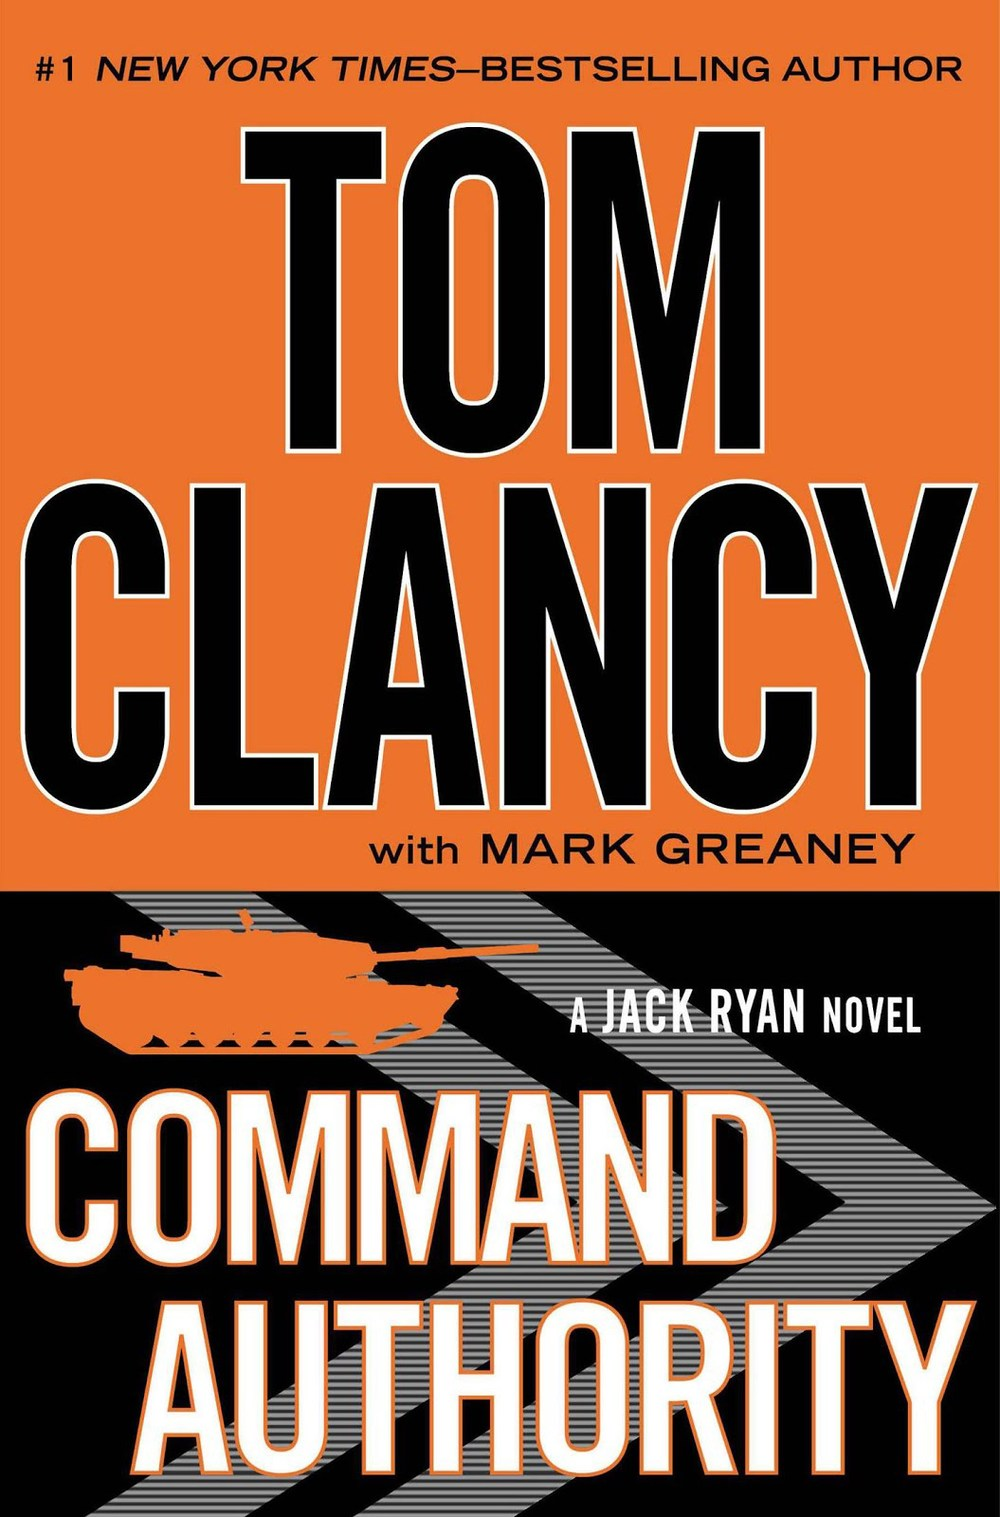 Command Authority by Tom Clancy (via Pittsburgh Post-Gazette)